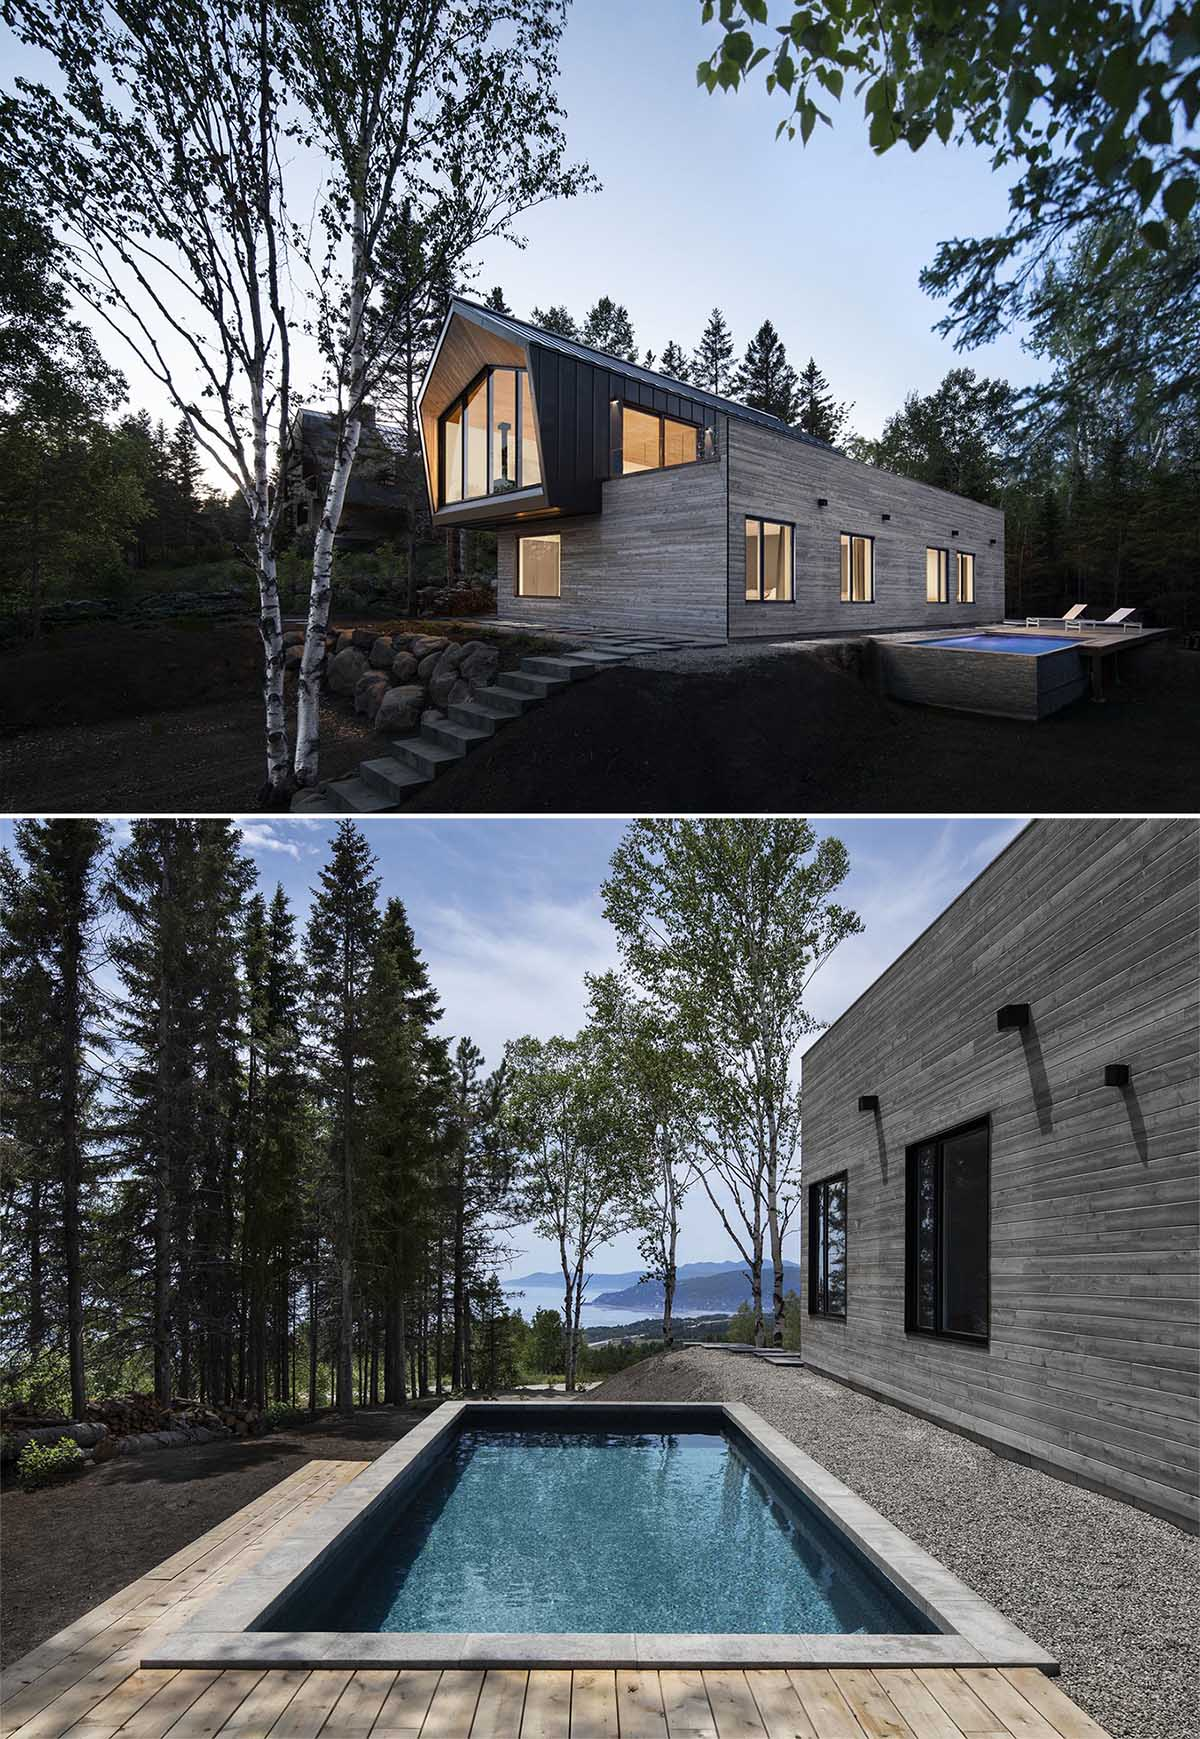 A modern home with a black metal and wood exterior, and a swimming pool.